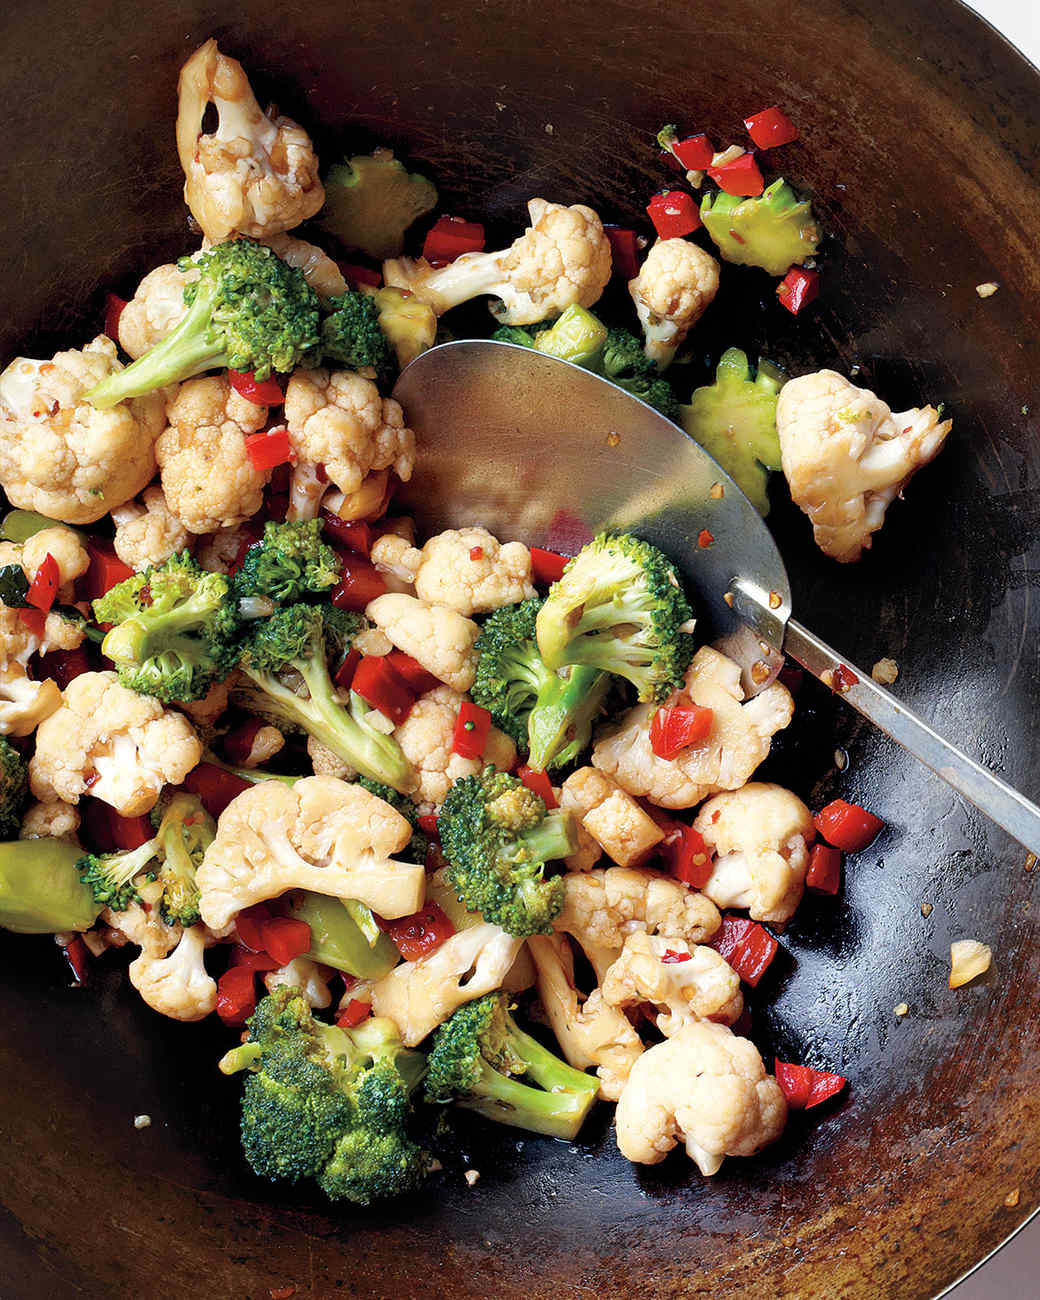 med106461_0111_eml_broccoli_stirfry.jpg